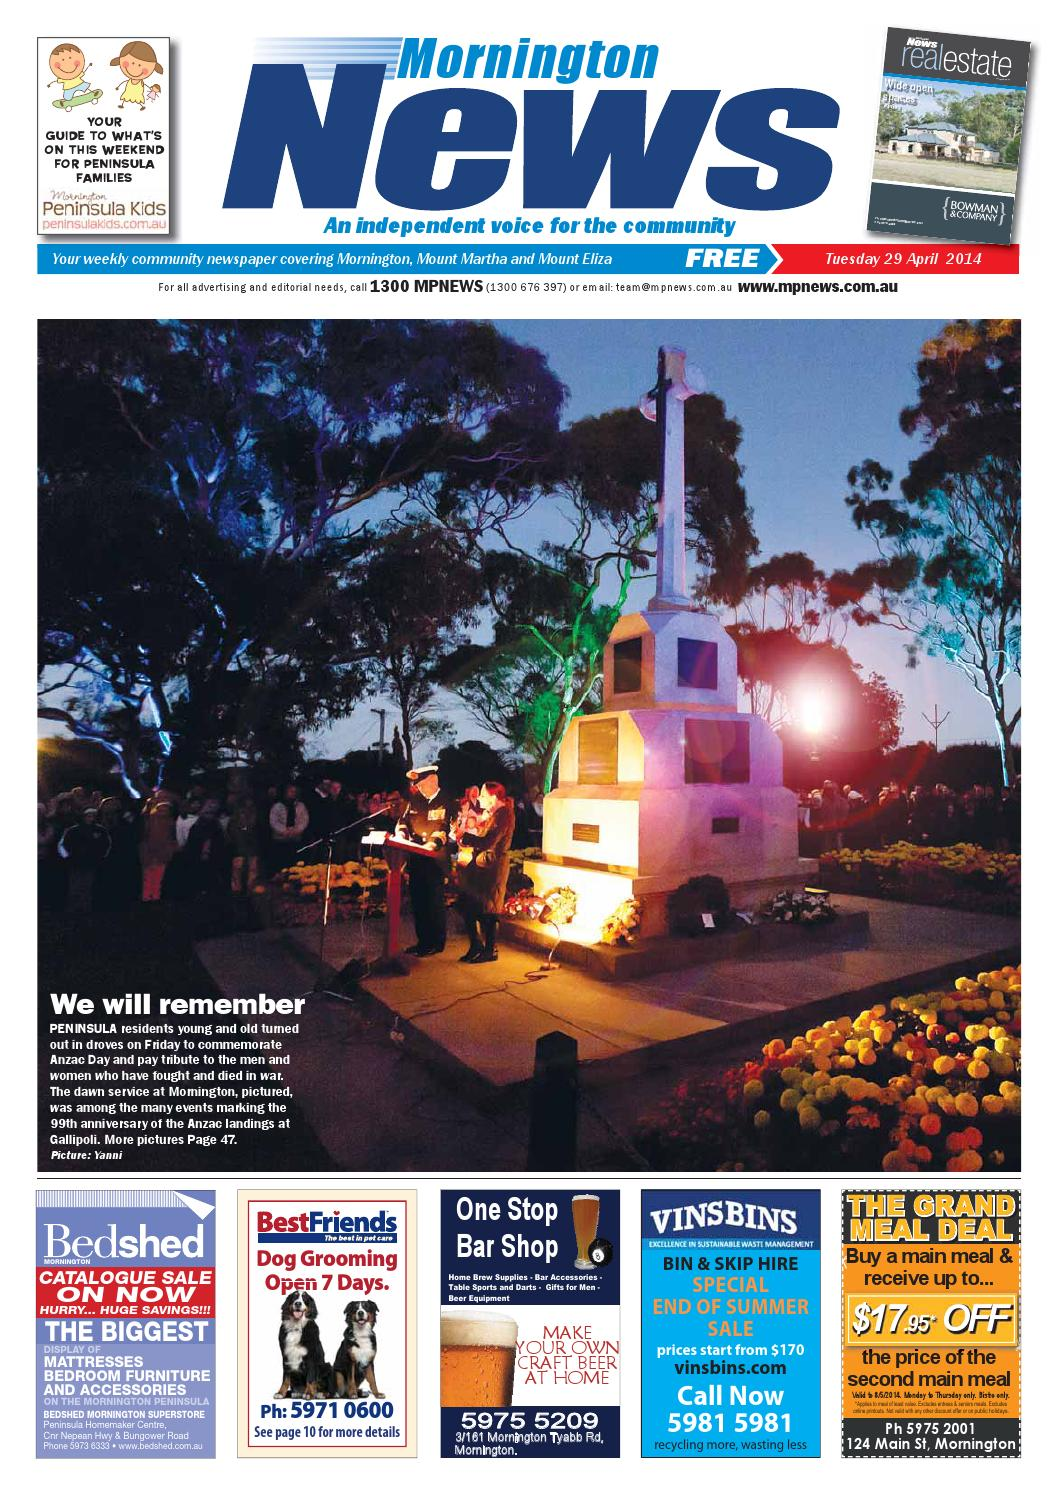 Bedshed Melbourne 29th April 2014 By Mornington Peninsula News Group Issuu